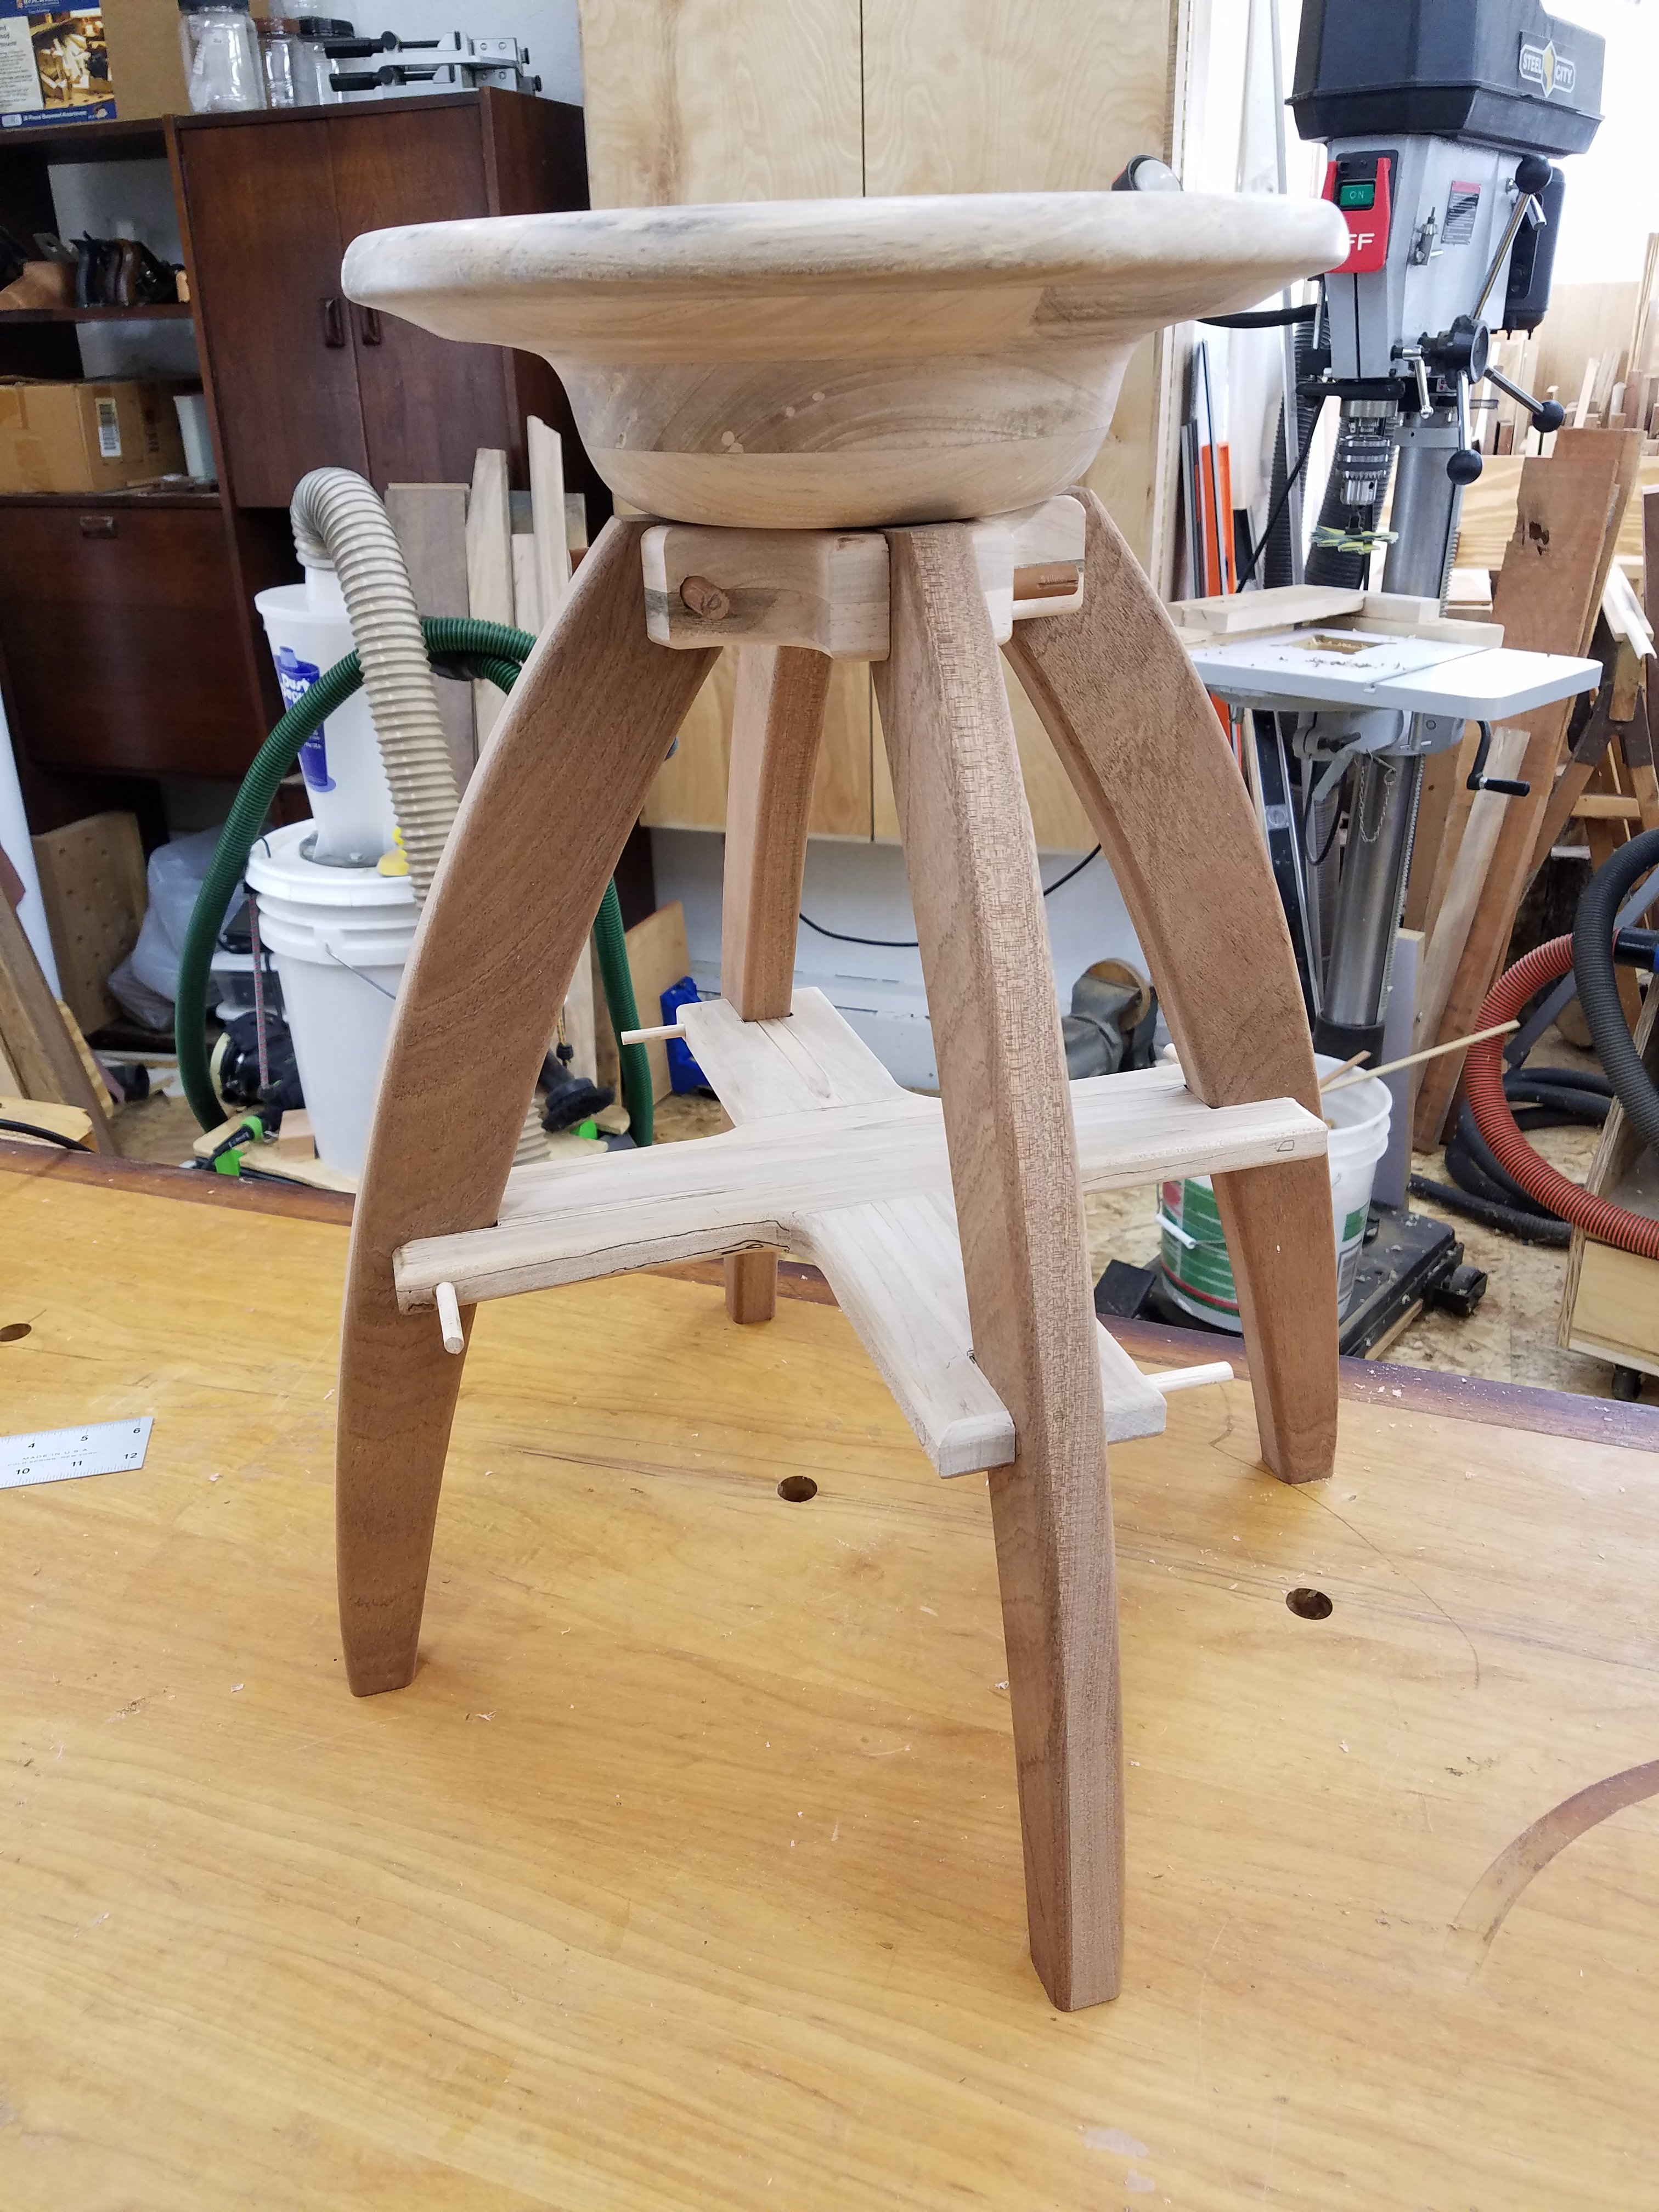 Shop Stool Project Feb 2020 #2